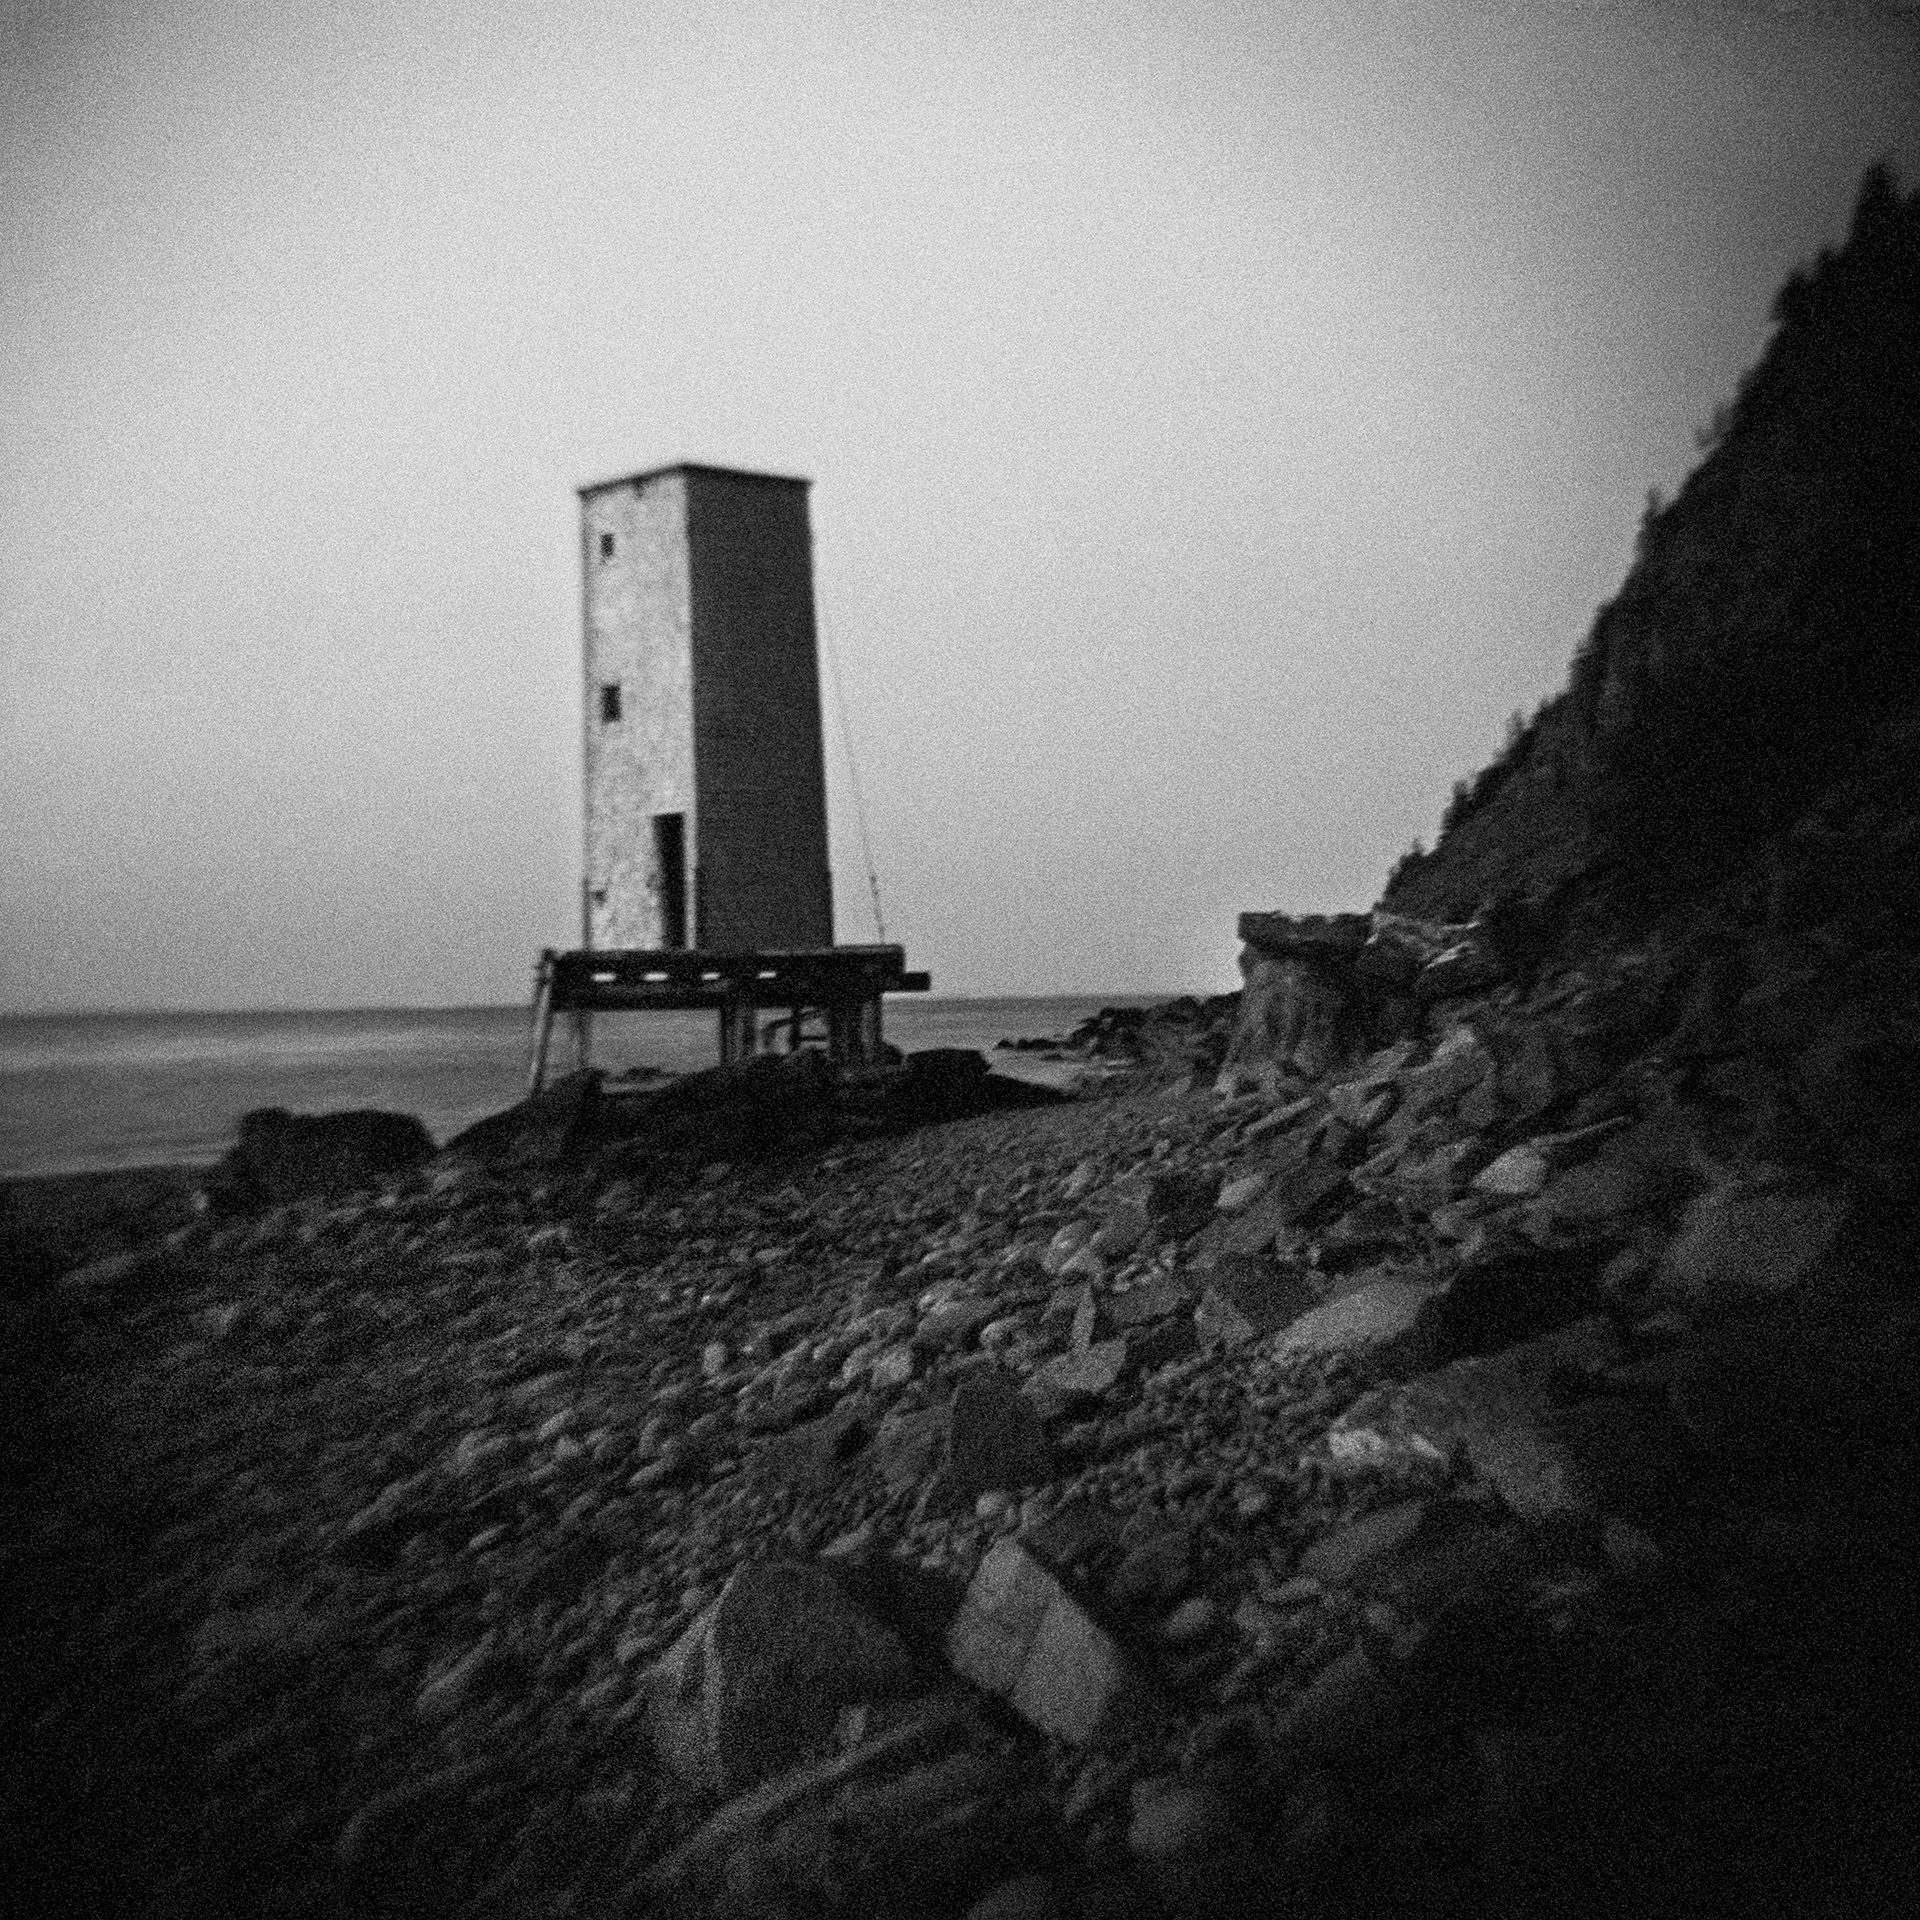 Untitled (shore tower), 2014